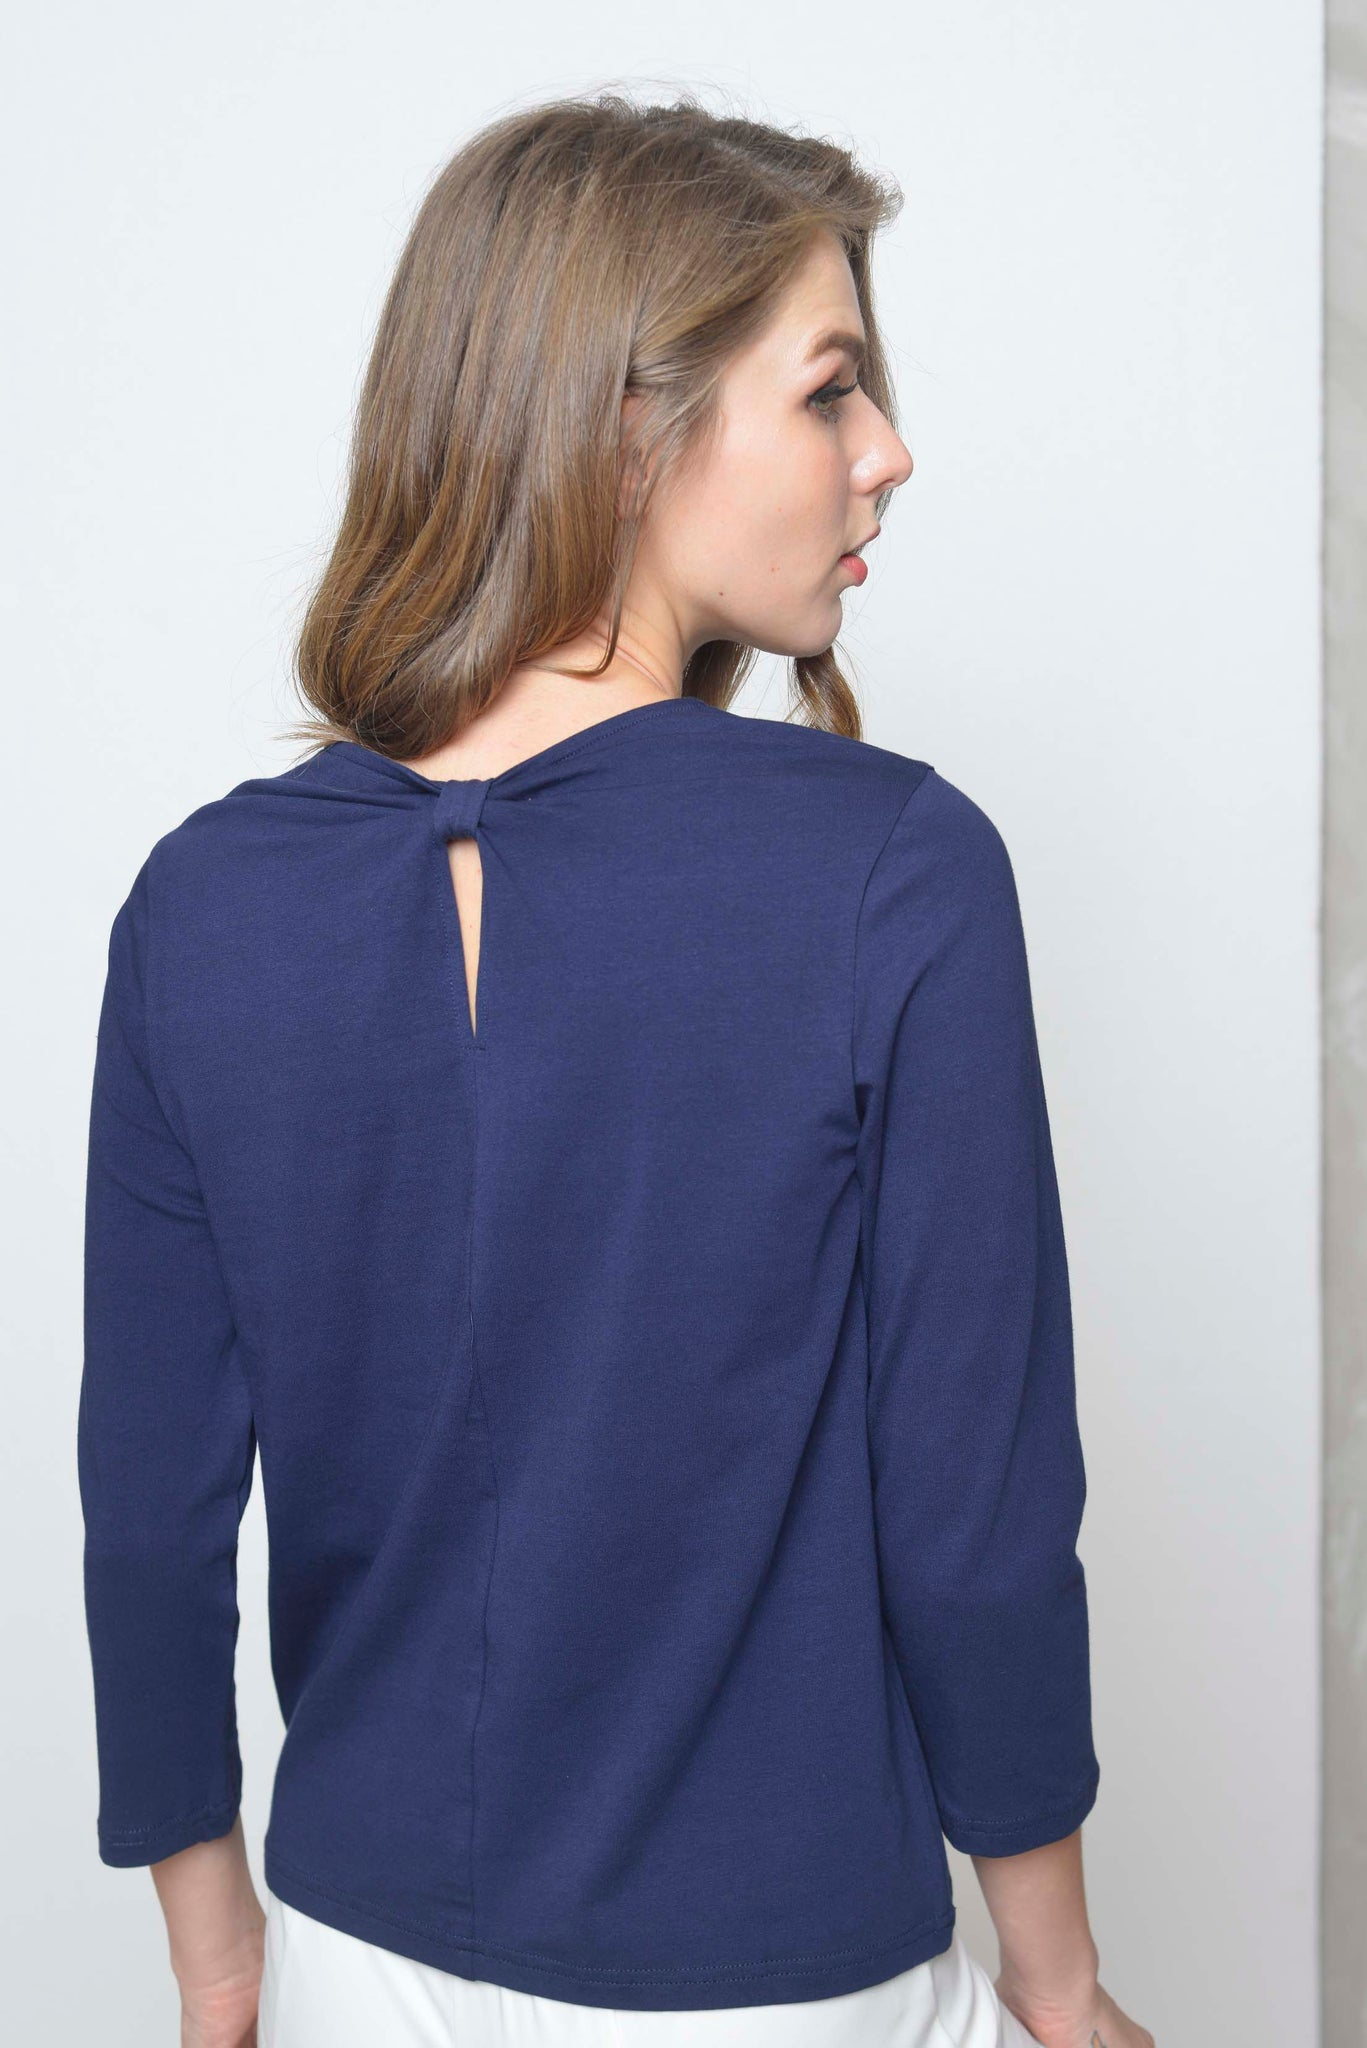 Basics-Giselle Tee in Navy